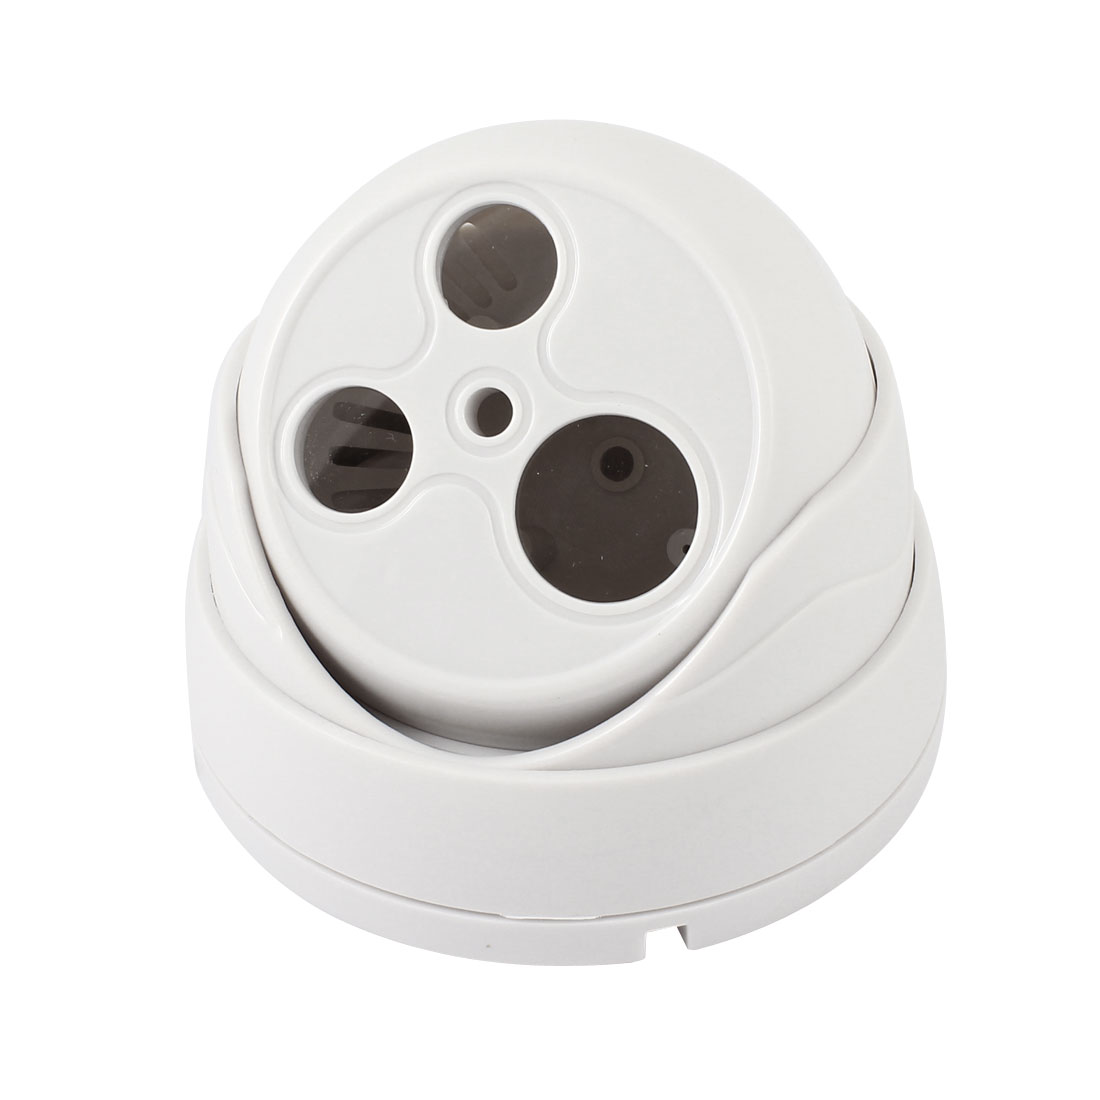 Double LED Surveillance White Plastic CCTV Dome Camera Housing Case